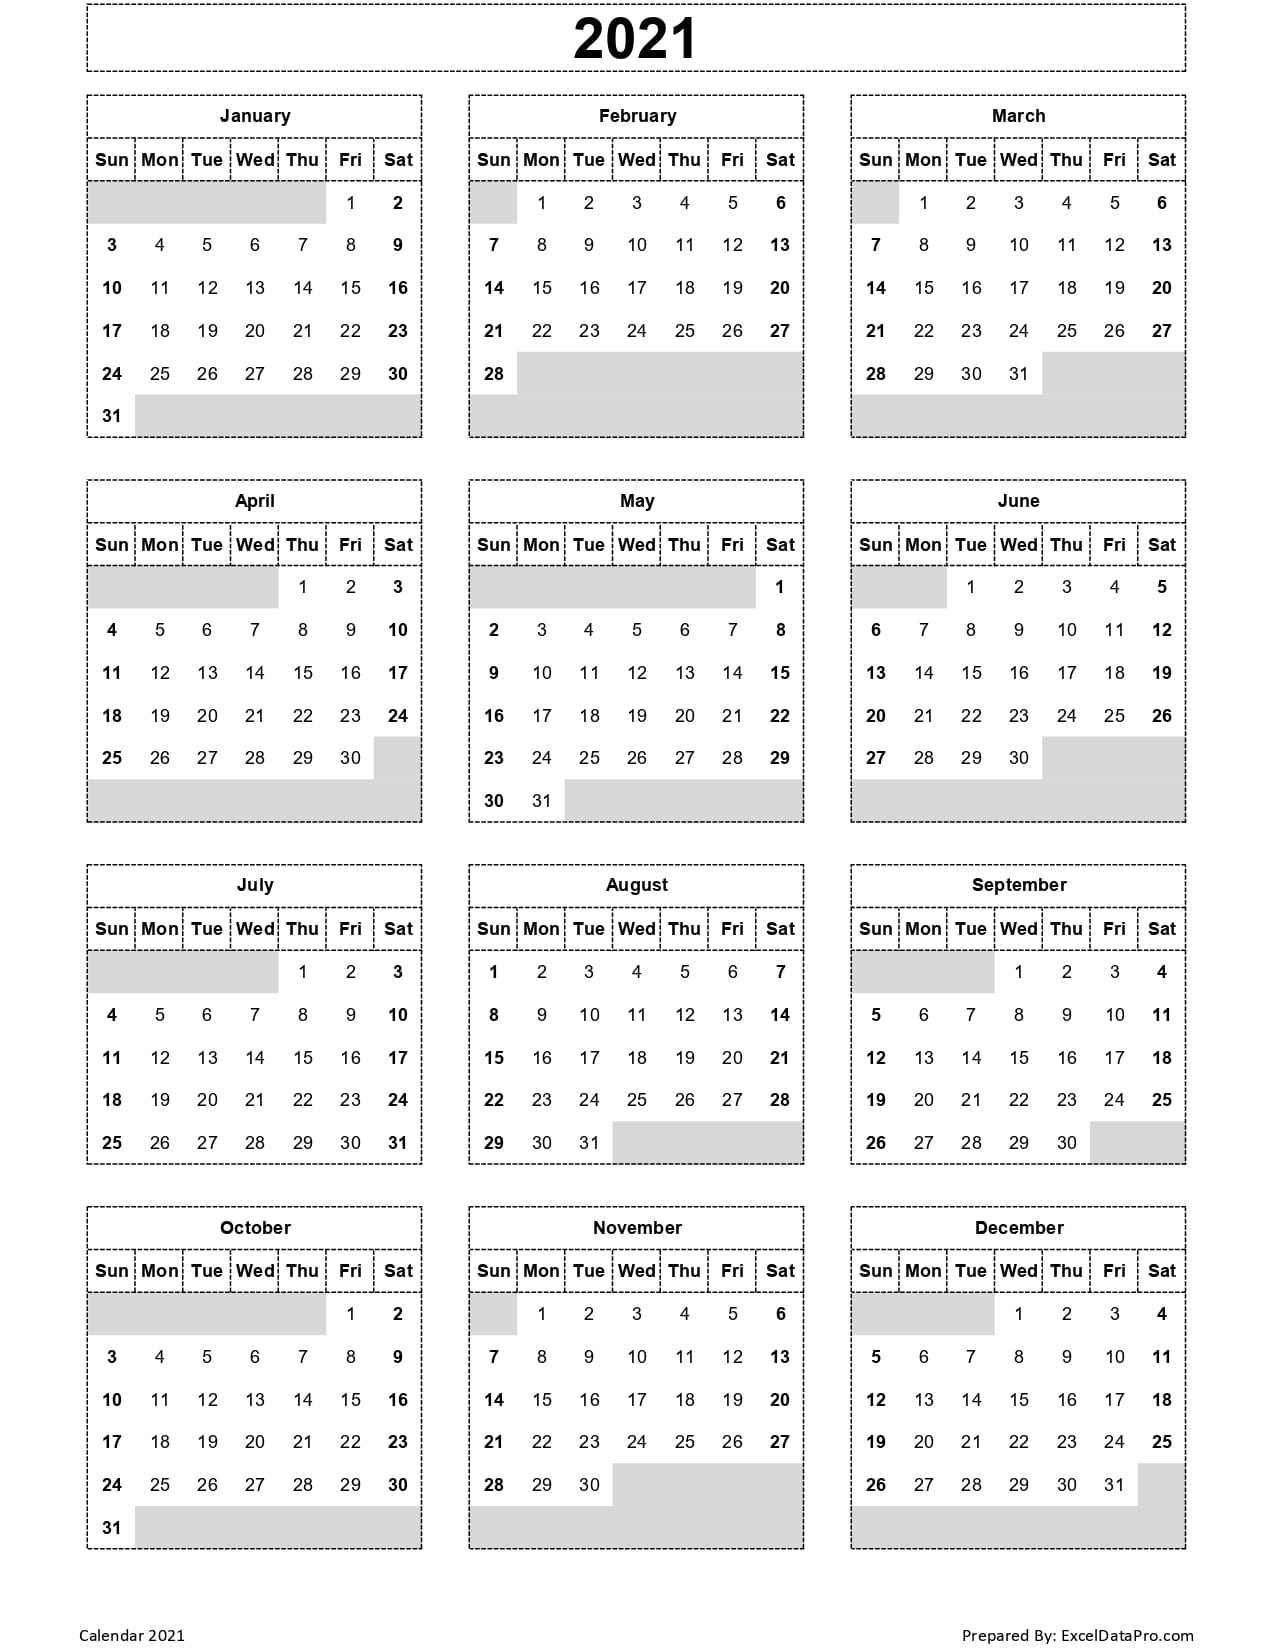 Download 2021 Yearly Calendar (Sun Start) Excel Template for 2021 Yearly Calendar With Boxes